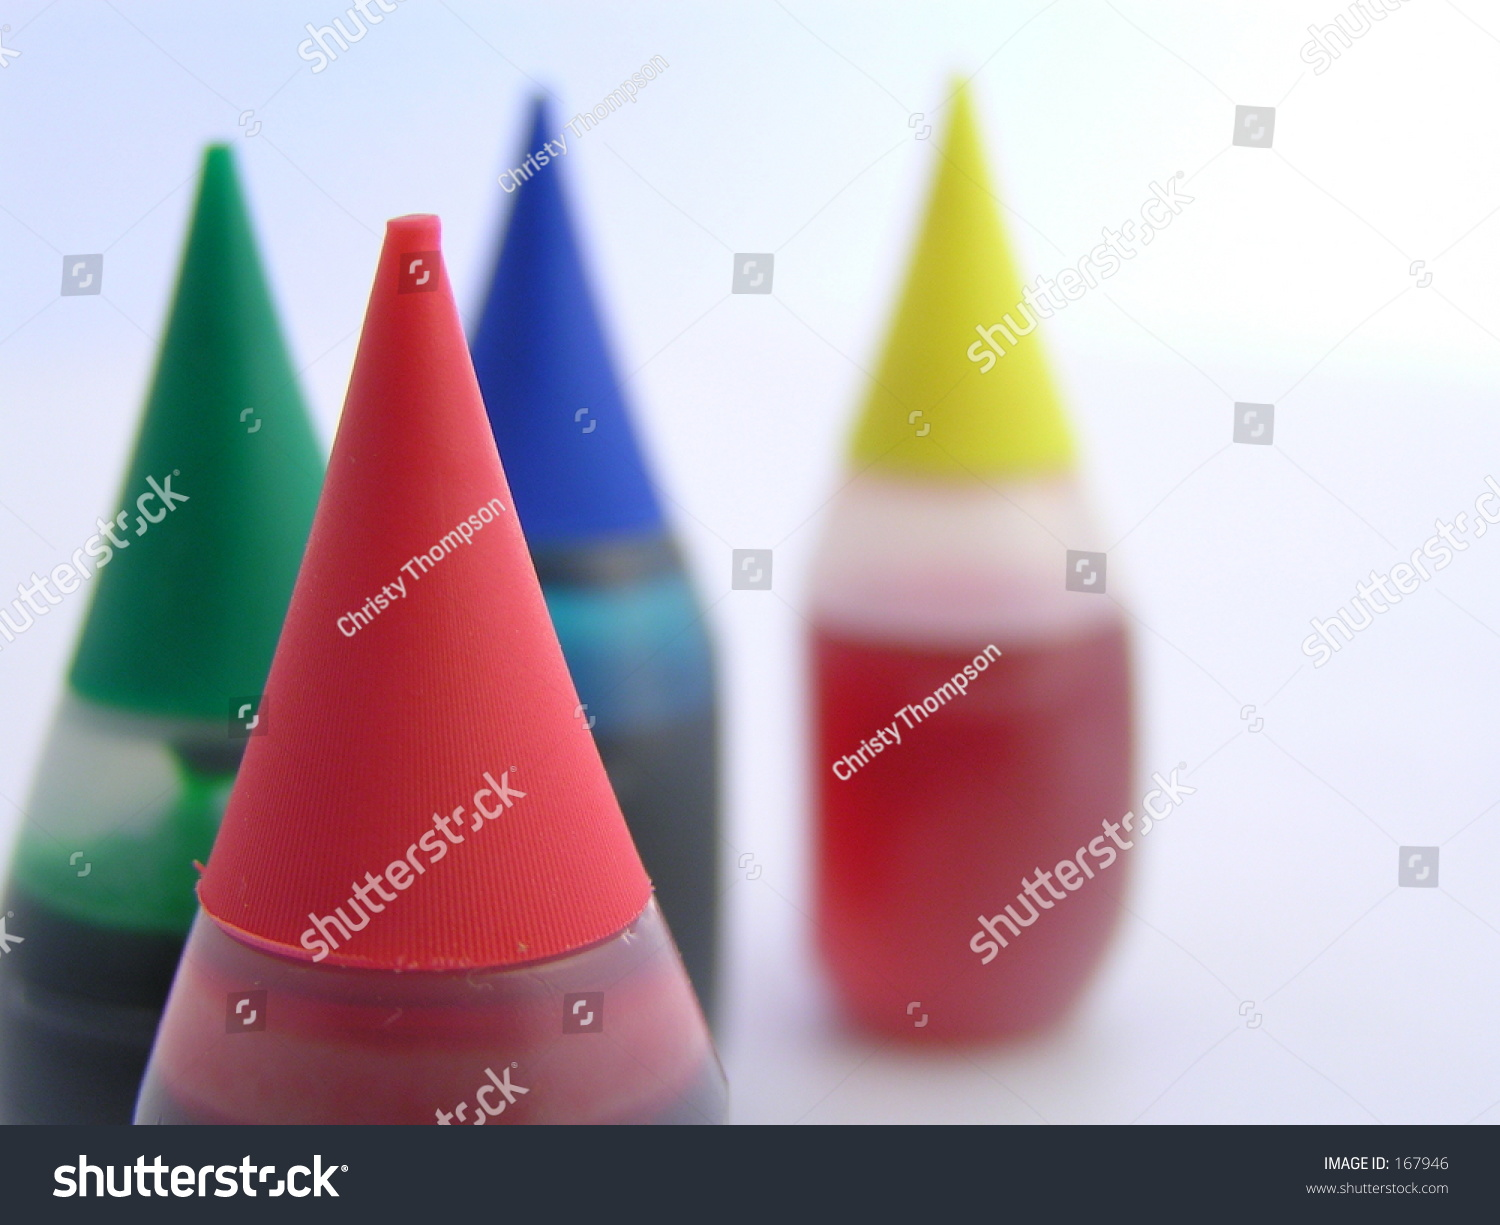 Food Coloring Bottles Meant Suggest Diversity Stock Photo